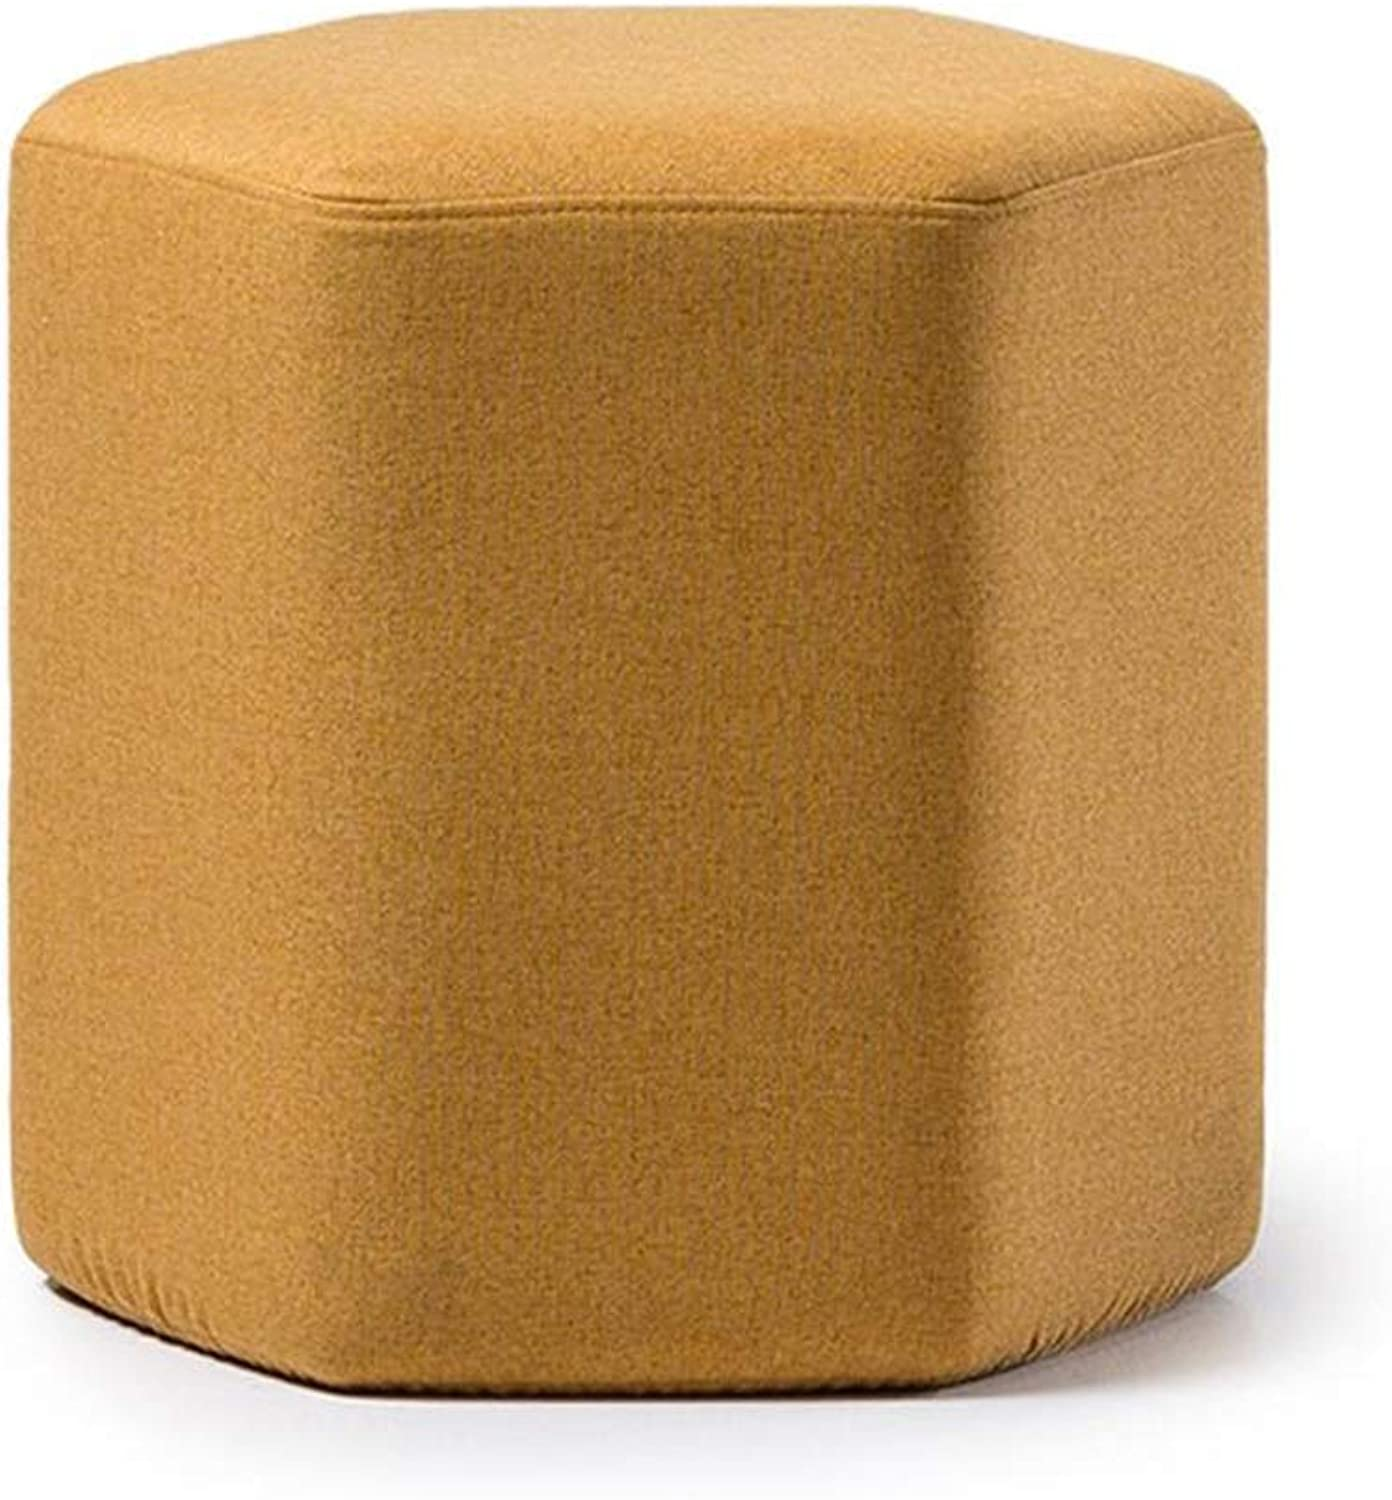 Stools Footstool Work Stool Change shoes Sofa Clothing Small Hexagon Creative Doorway Wearing shoes Short Stacking Washable CONGMING (color   Yellow)